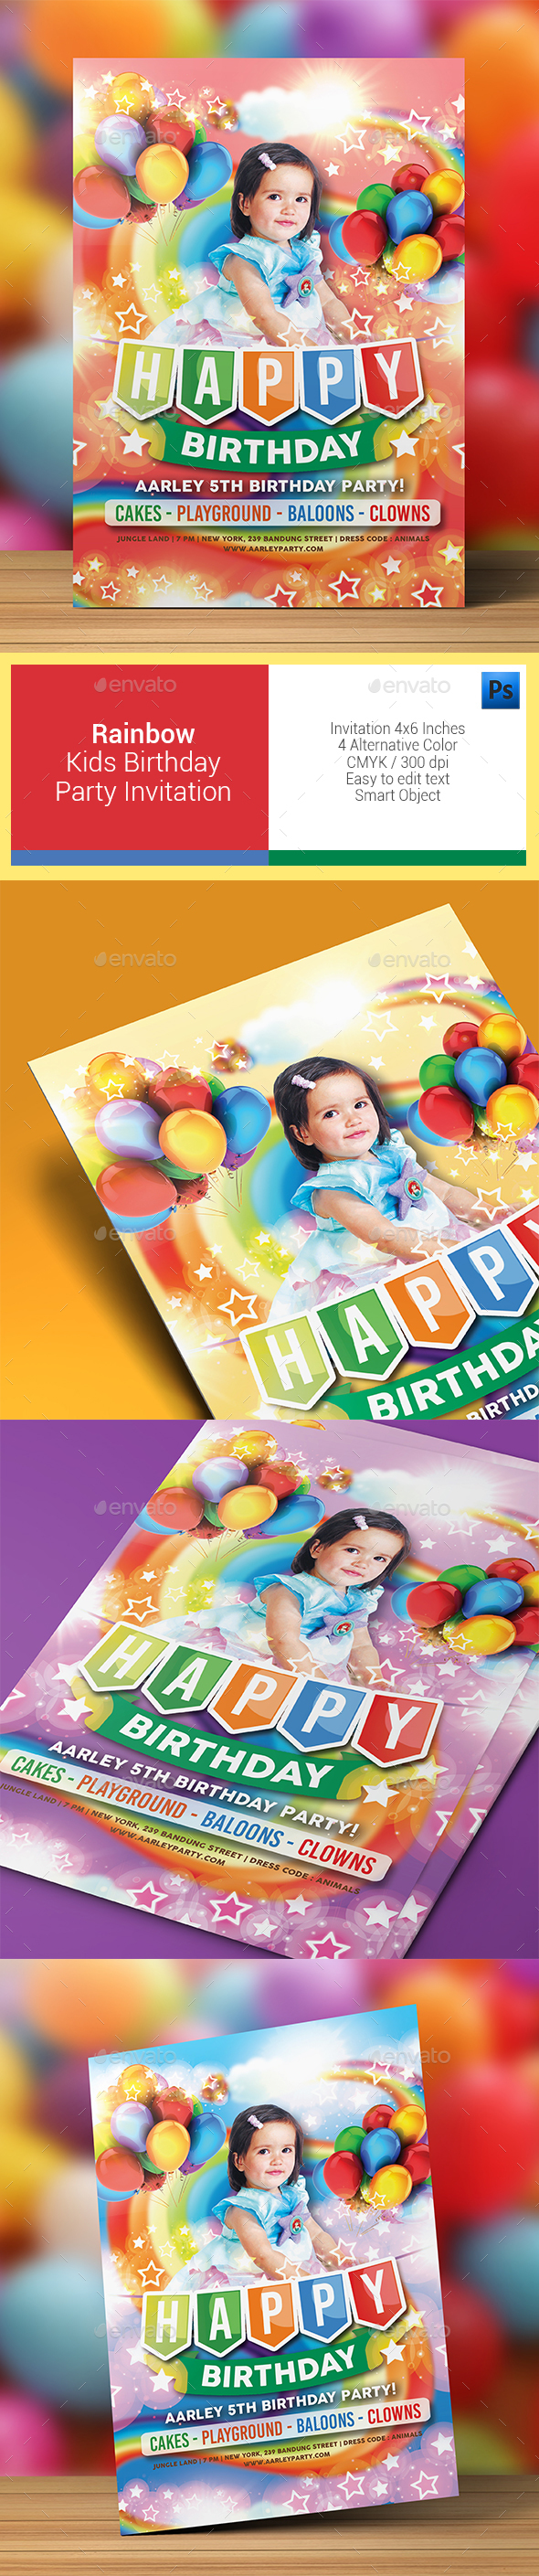 Rainbow Kids Birthday Party Invitation - Birthday Greeting Cards